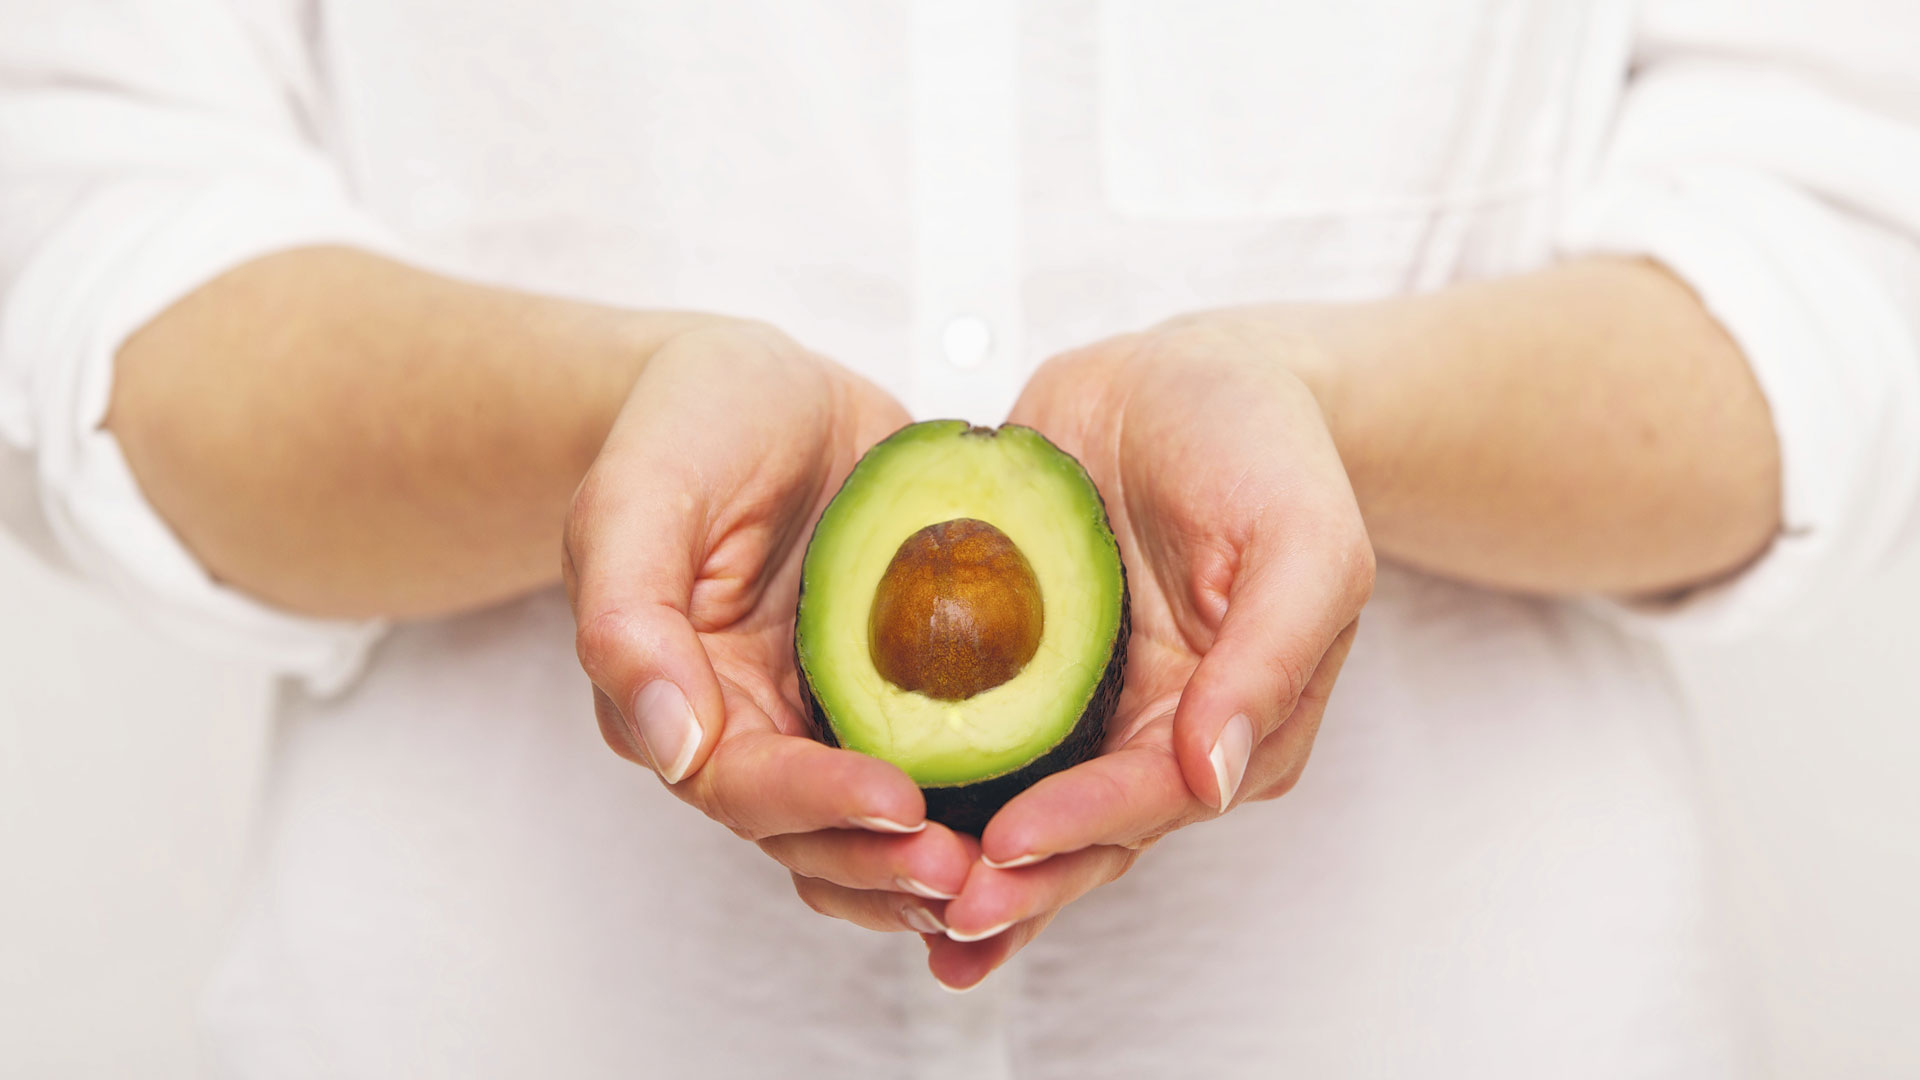 Woman holding a sliced avacado